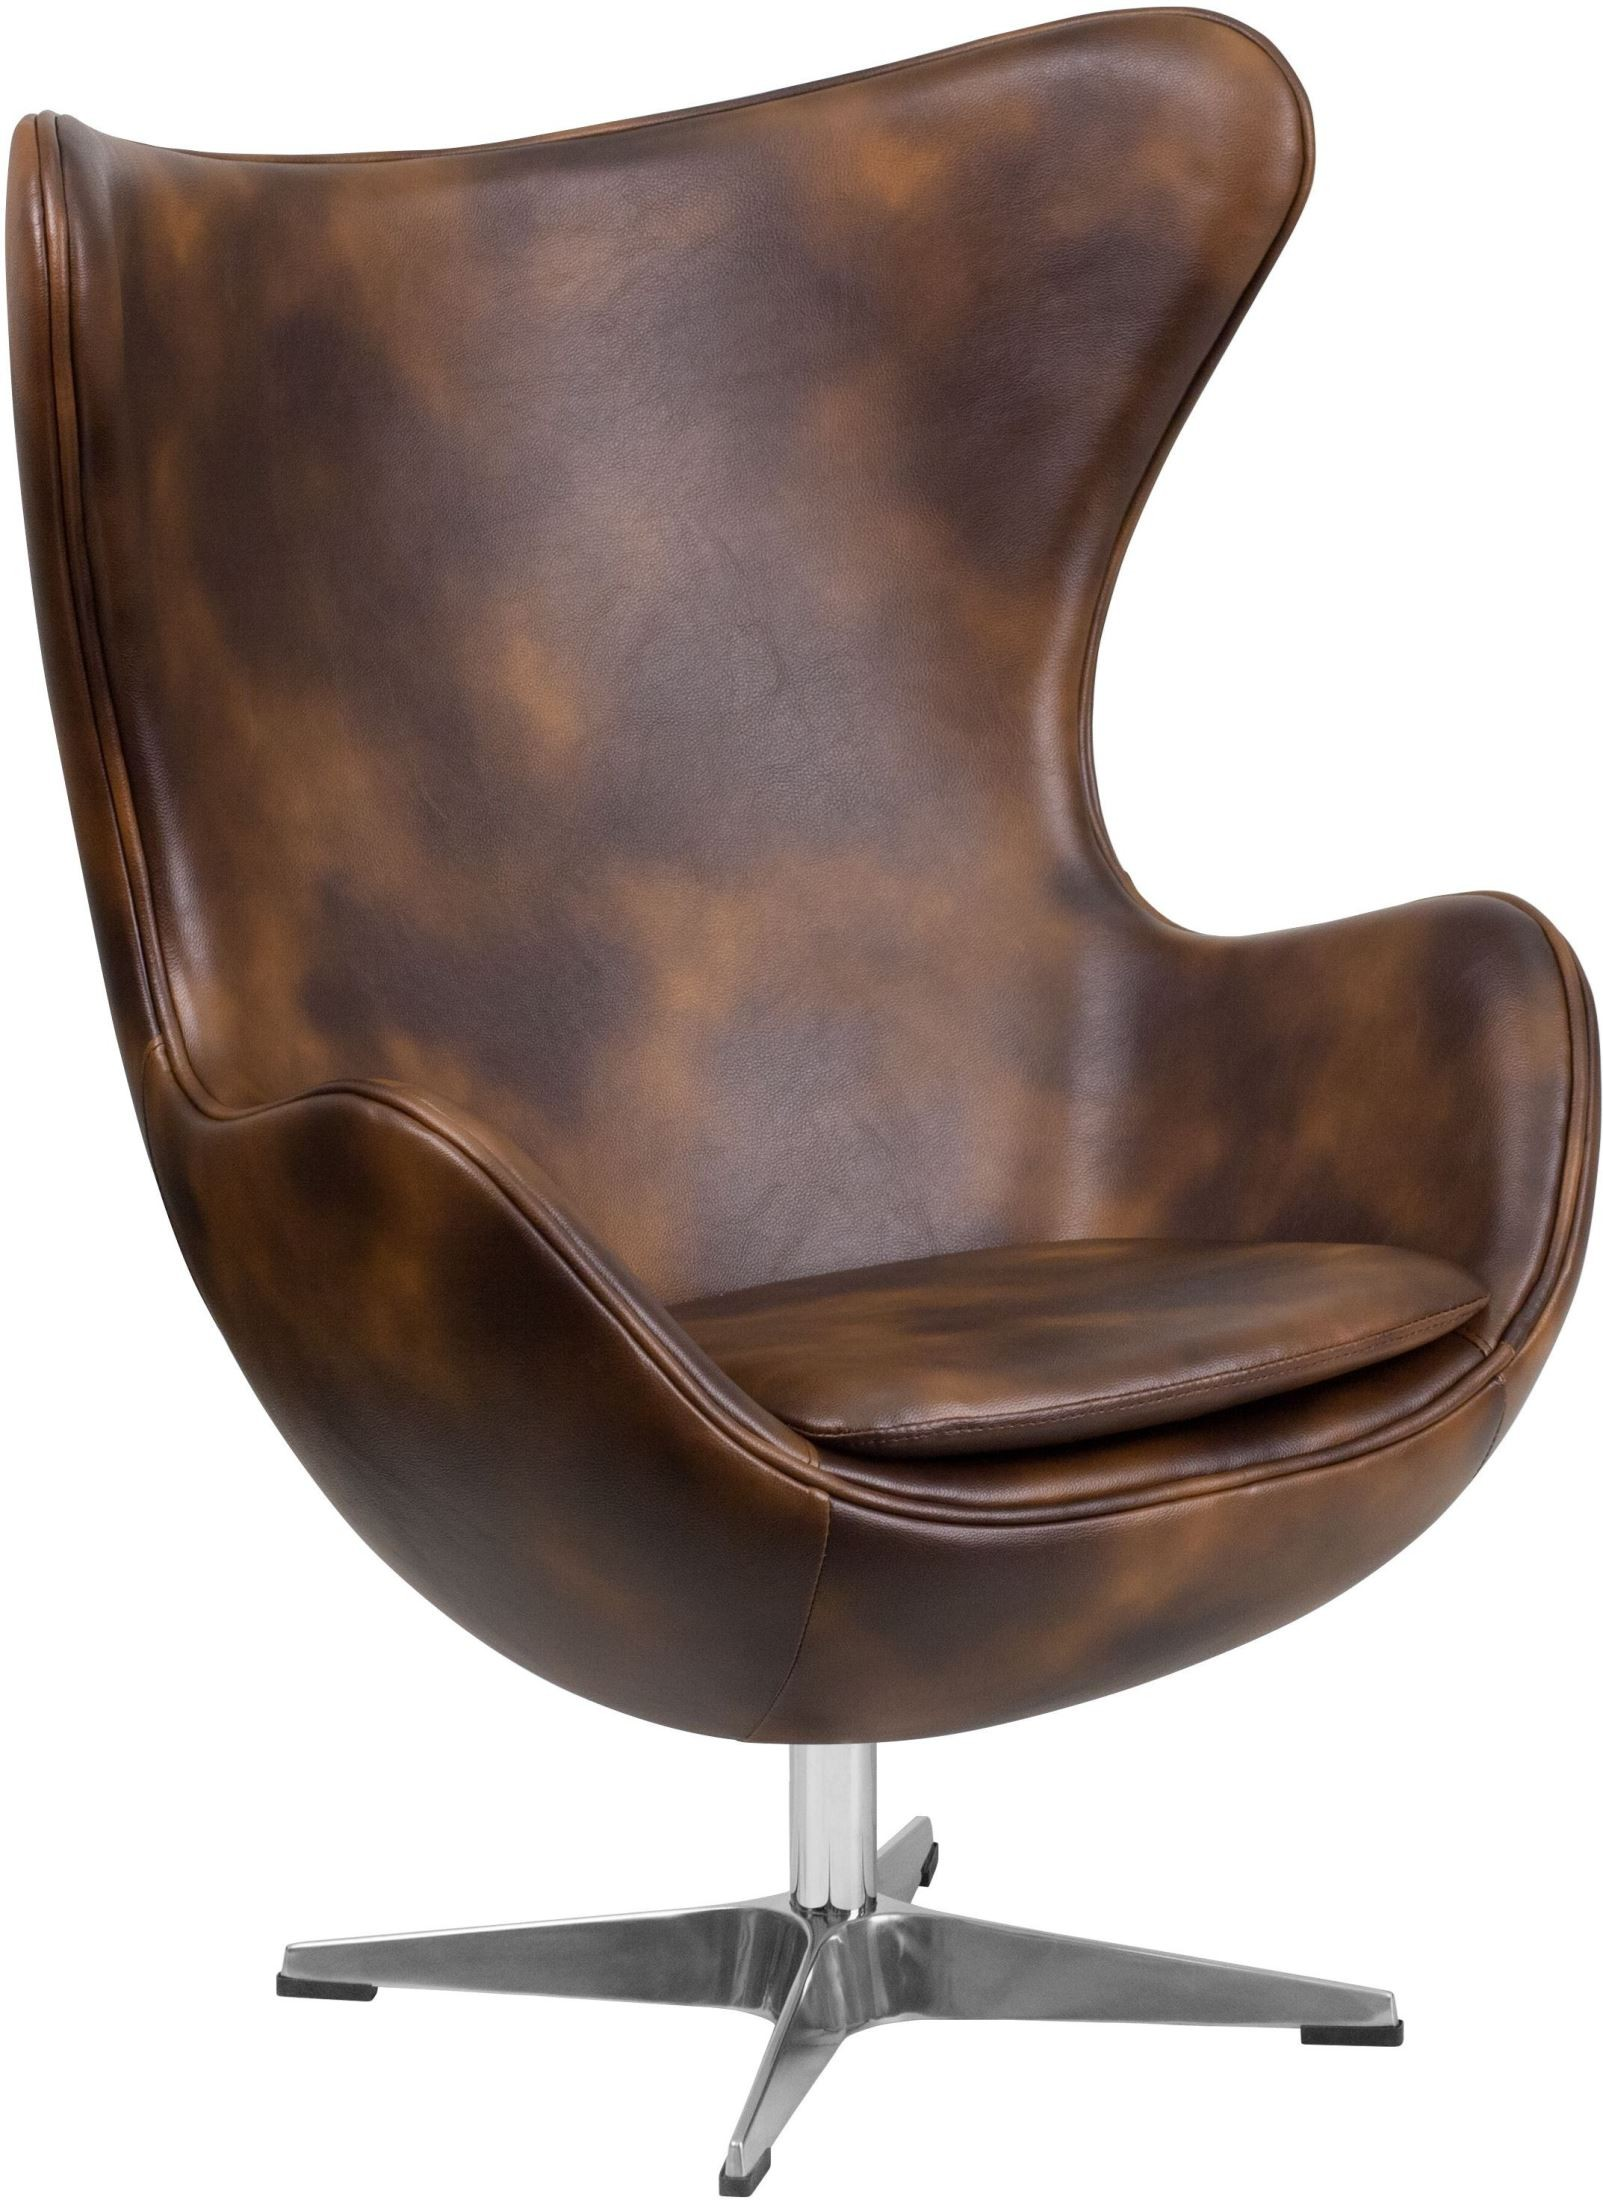 Used Egg Chair Bomber Jacket Leather Egg Chair With Tilt Lock Mechanism